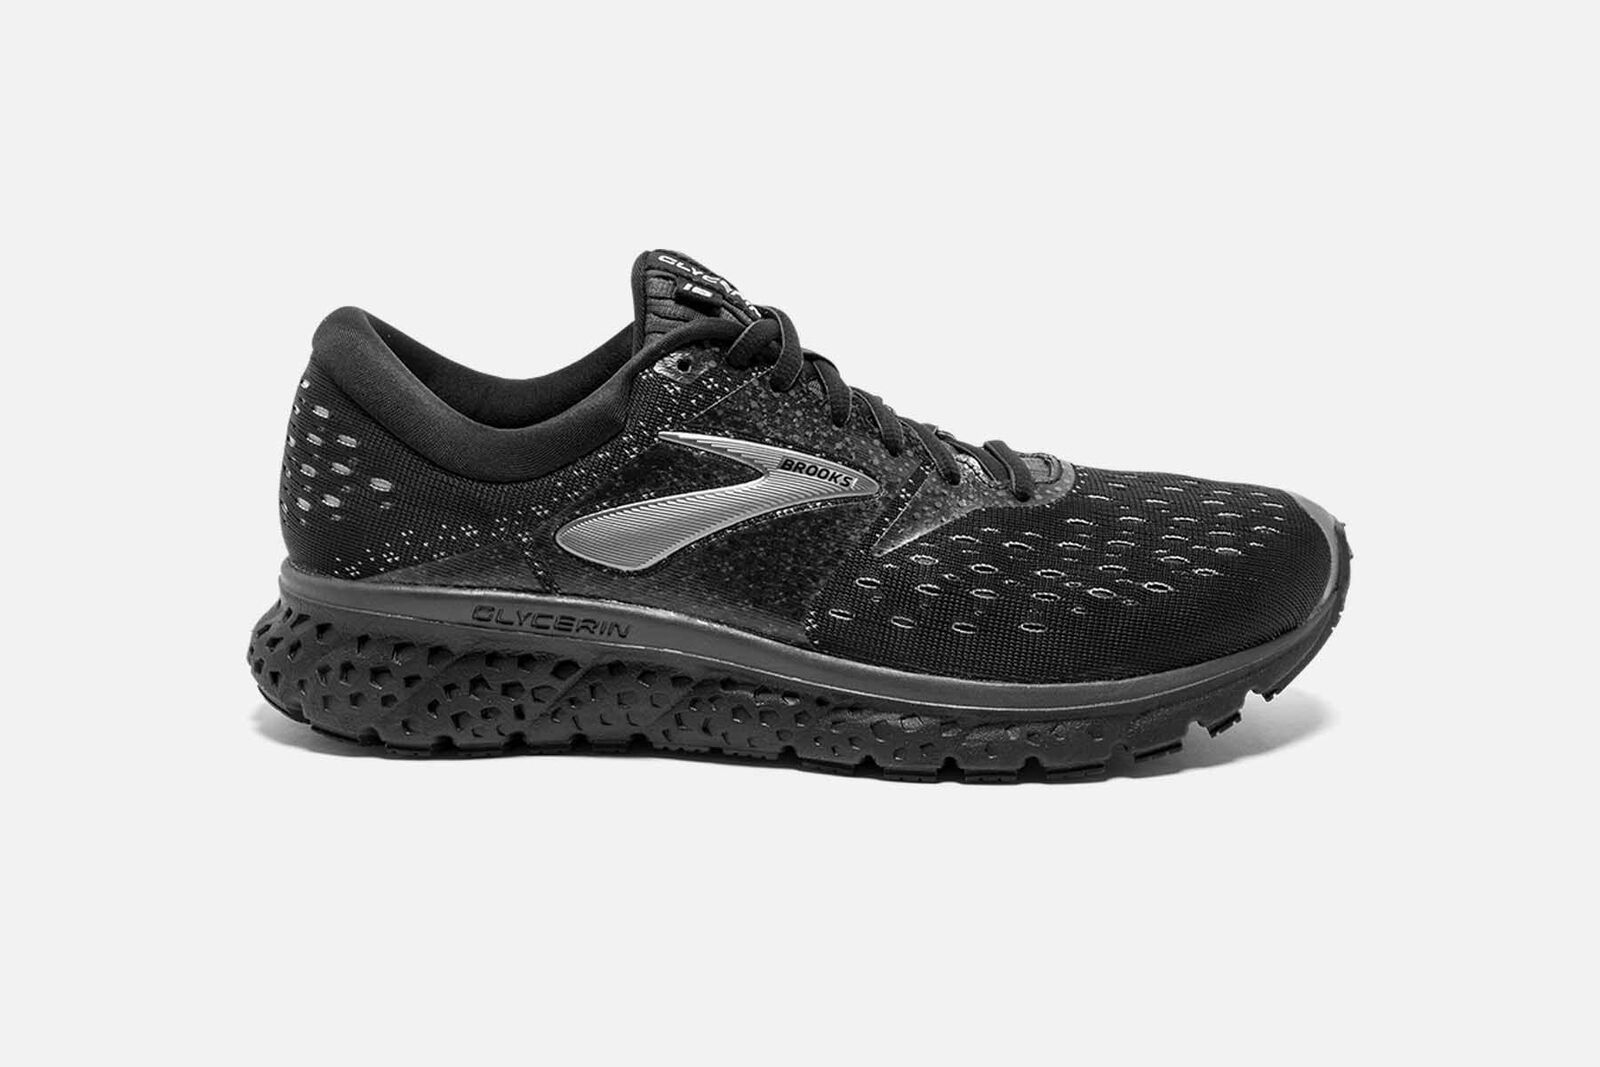 74dcccb1142 Brooks Running Men s Glycerin 16 shoes noiozn1197-Athletic Shoes ...